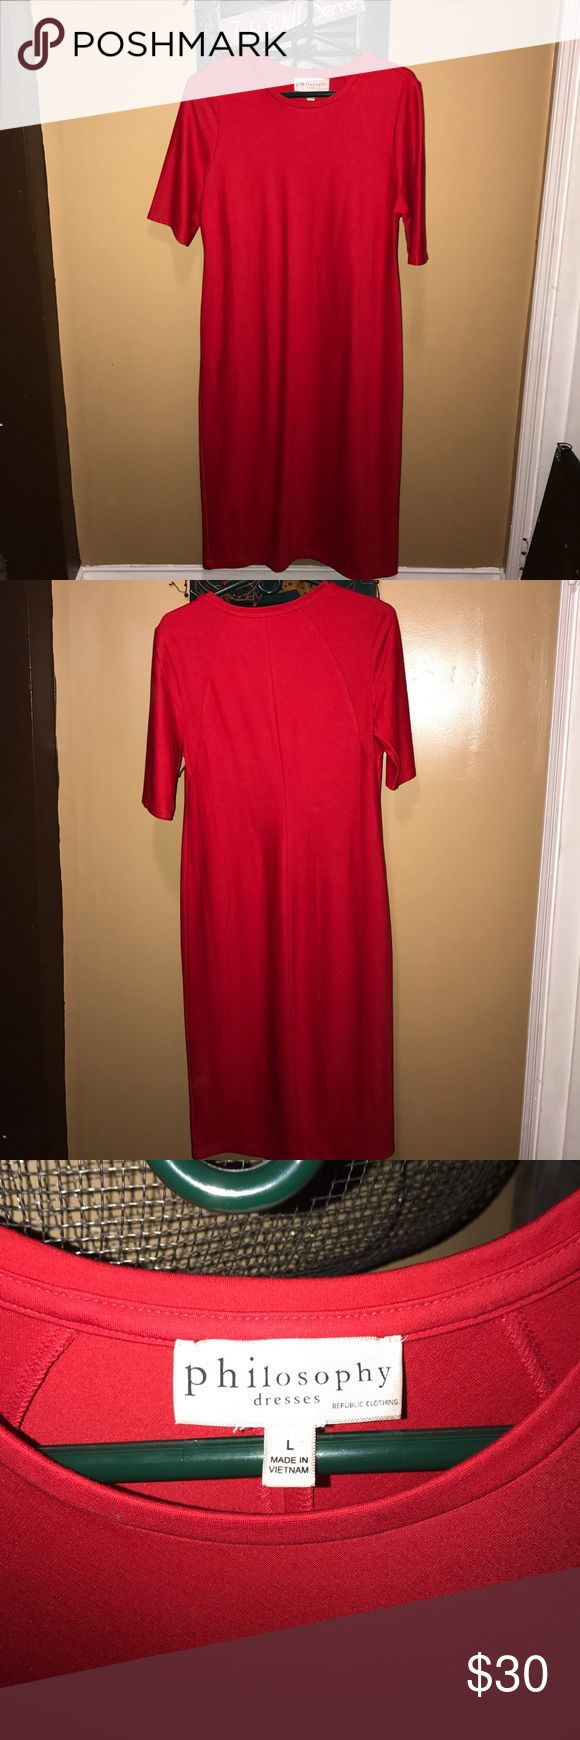 ♥️Philosophy dress!!♥️ Beautiful red, short sleeve Philosophy dress! The fabric info is in the pictures...feels amazing against your skin! Philosophy Dresses